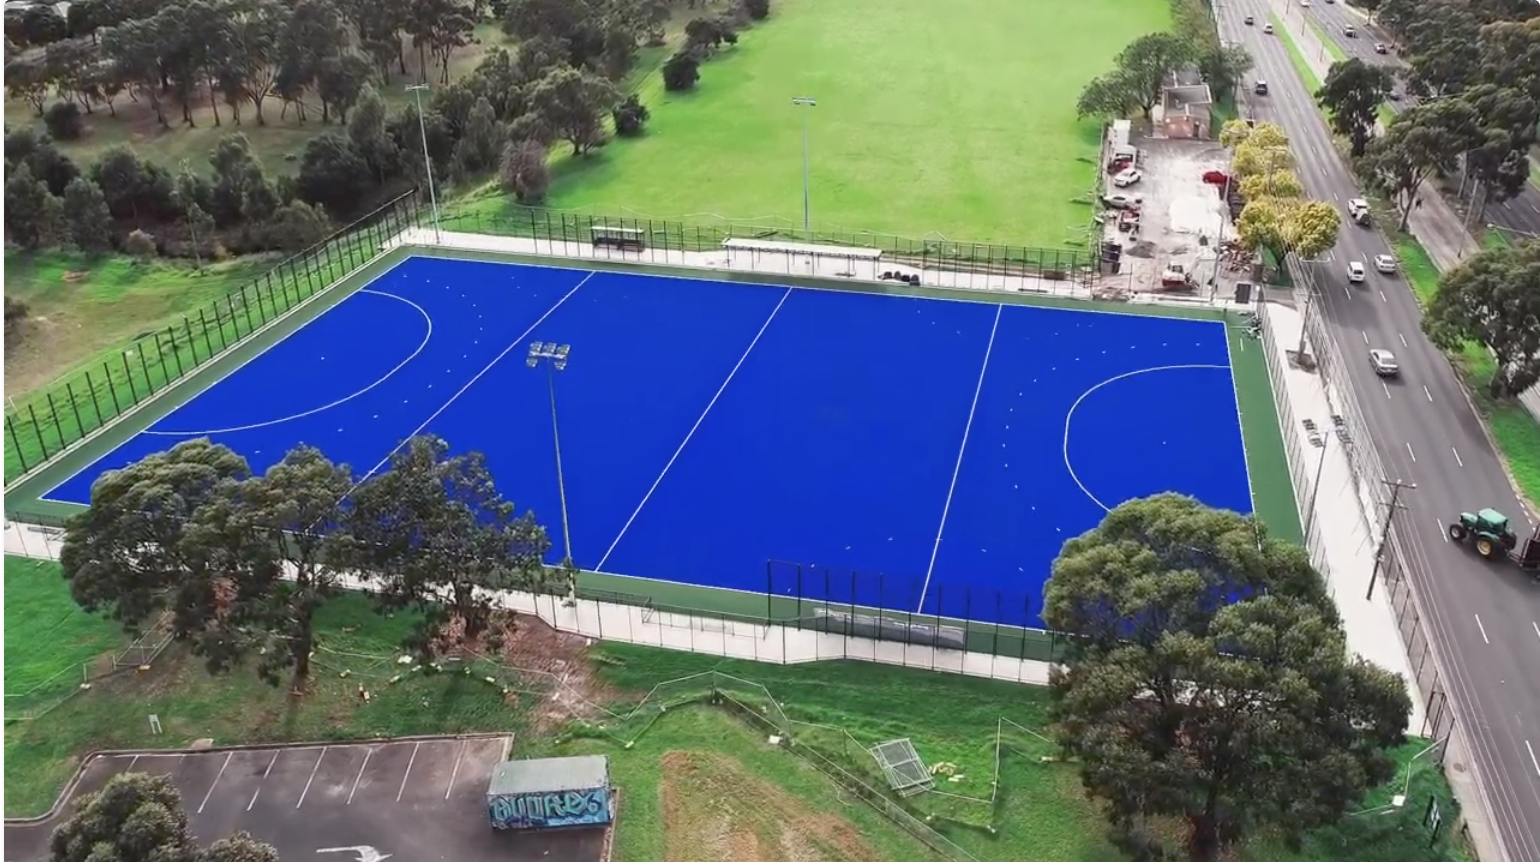 Hockey field showcasing recycled material potential